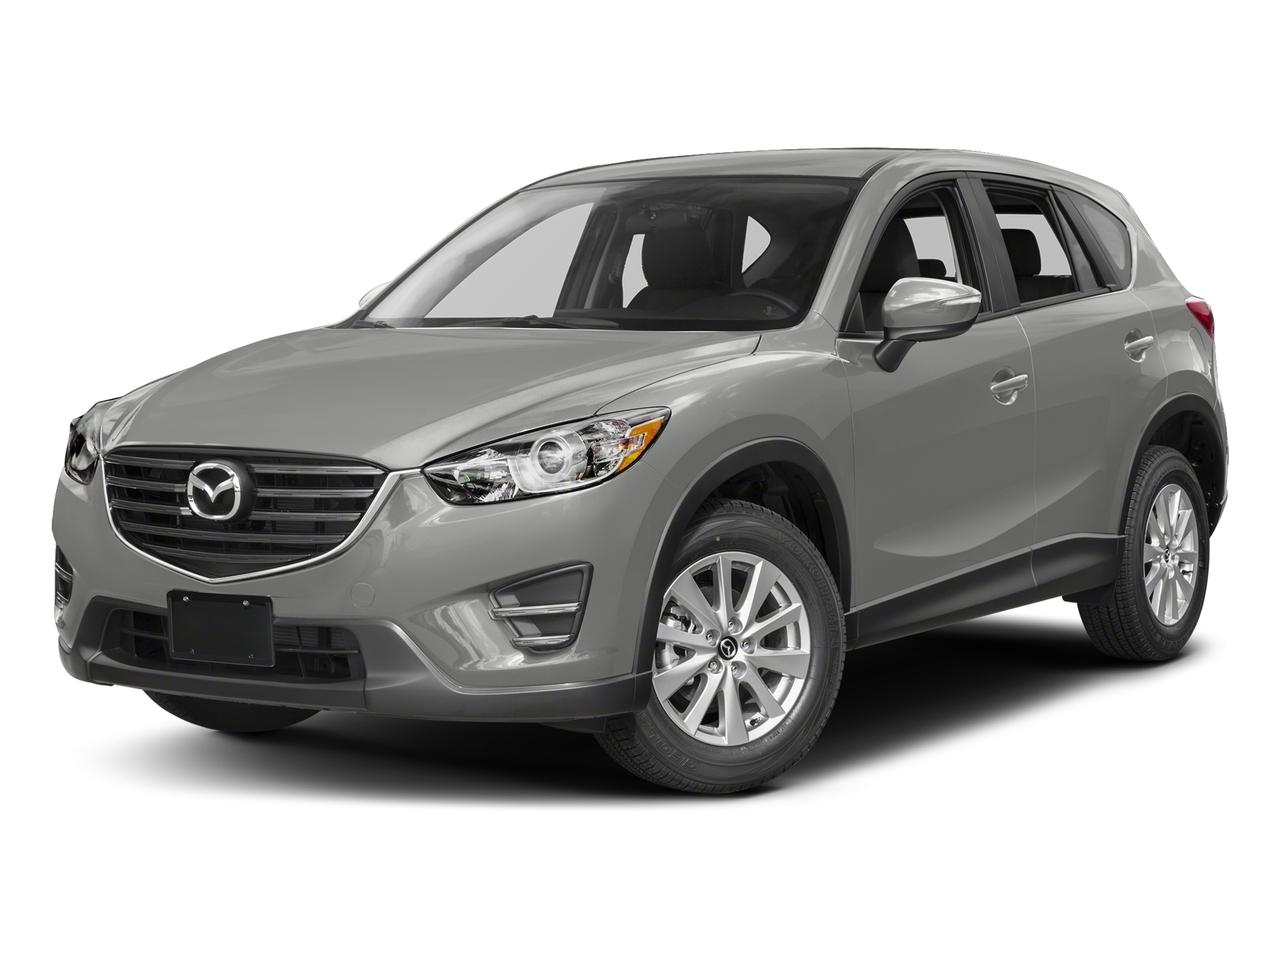 2016 Mazda CX-5 Vehicle Photo in San Antonio, TX 78238